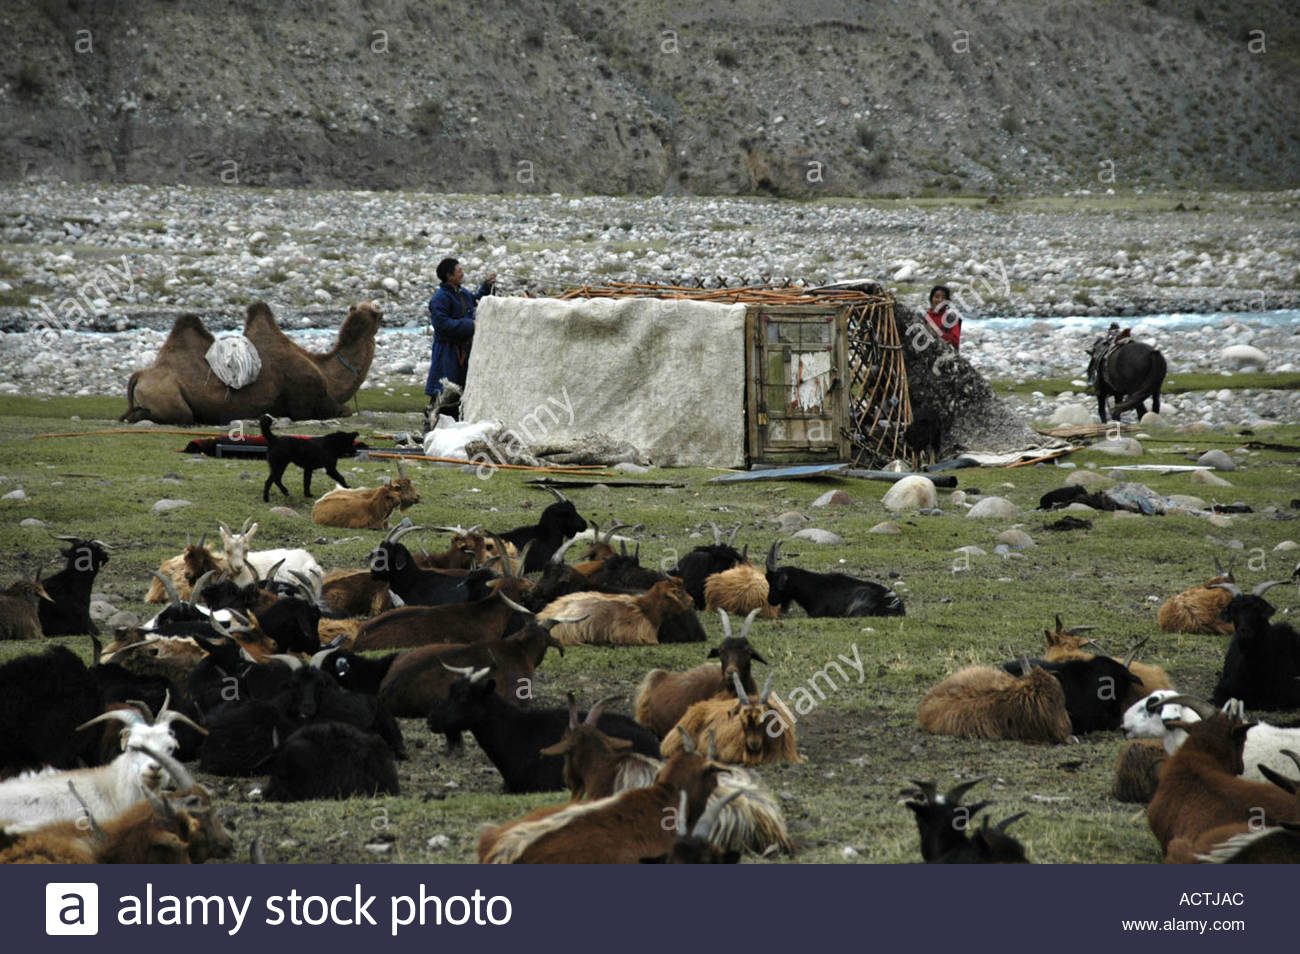 nomads-family-with-herds-of-goats-and-camel-pulls-down-a-yurte-mongolian-ACTJAC